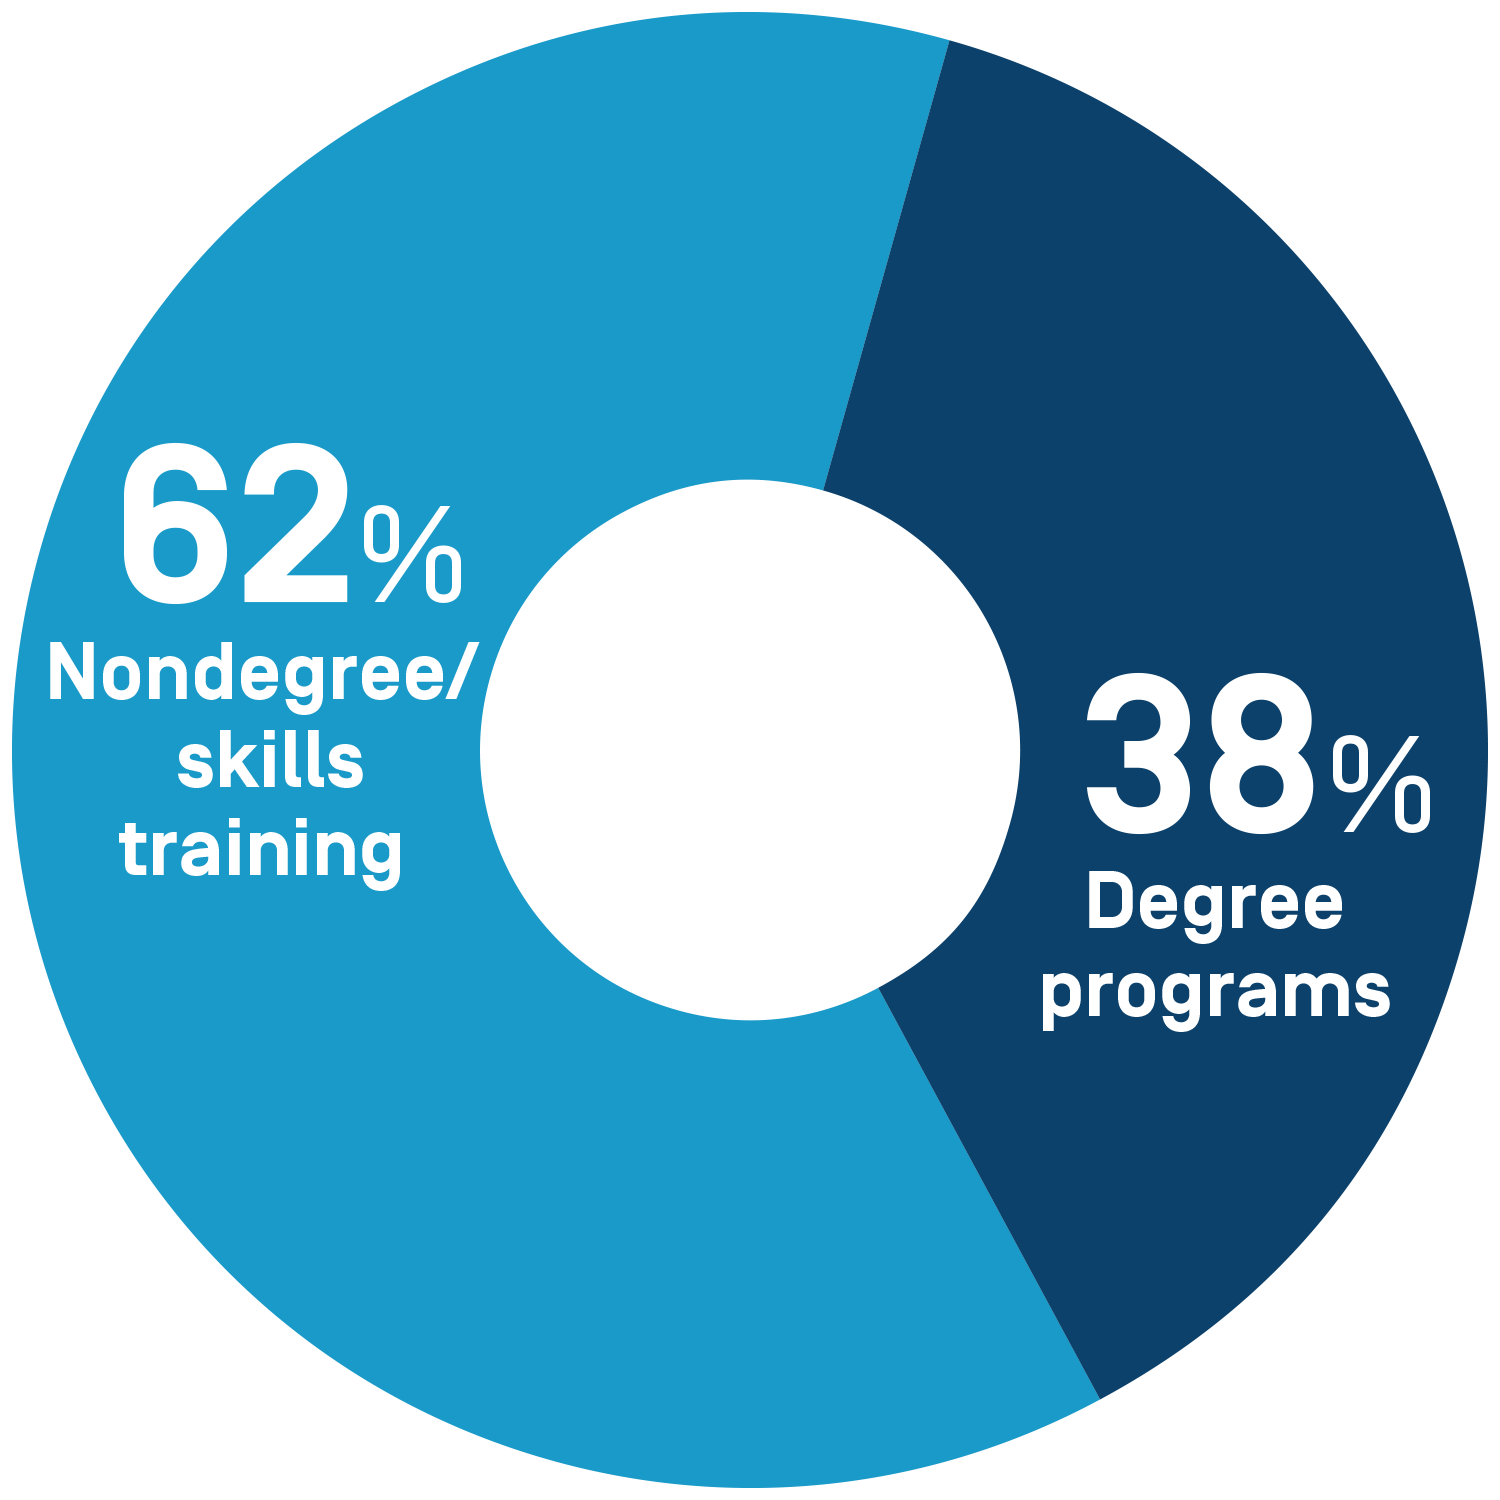 Potential career-switchers prefer non-degree programs